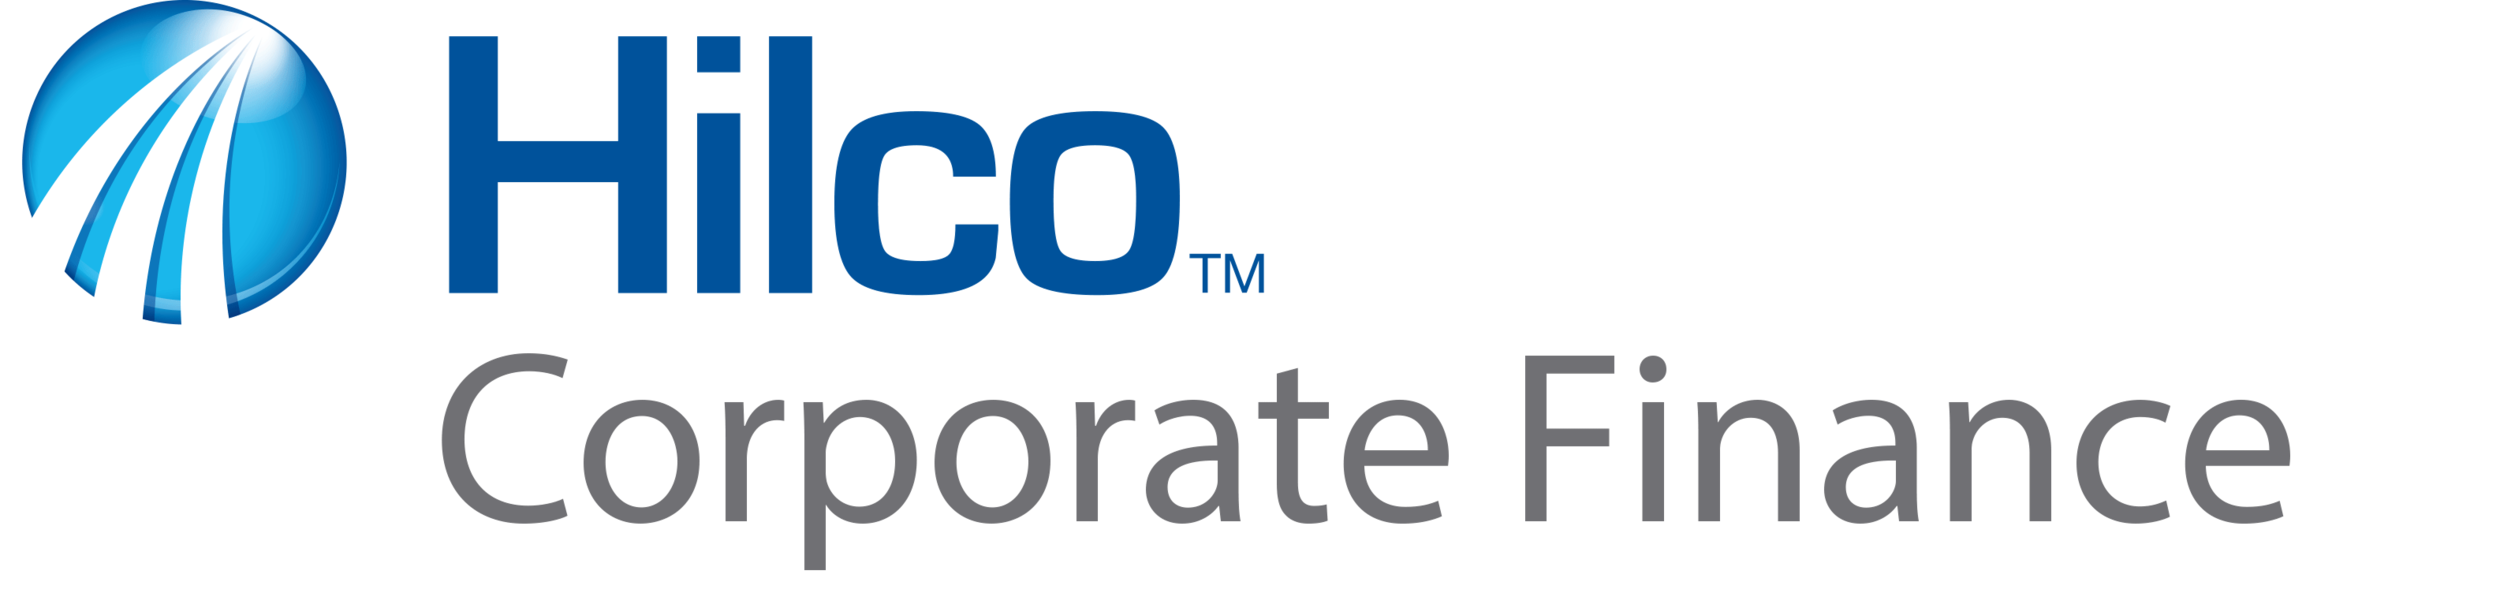 hilco-corporate-finance-logo.png